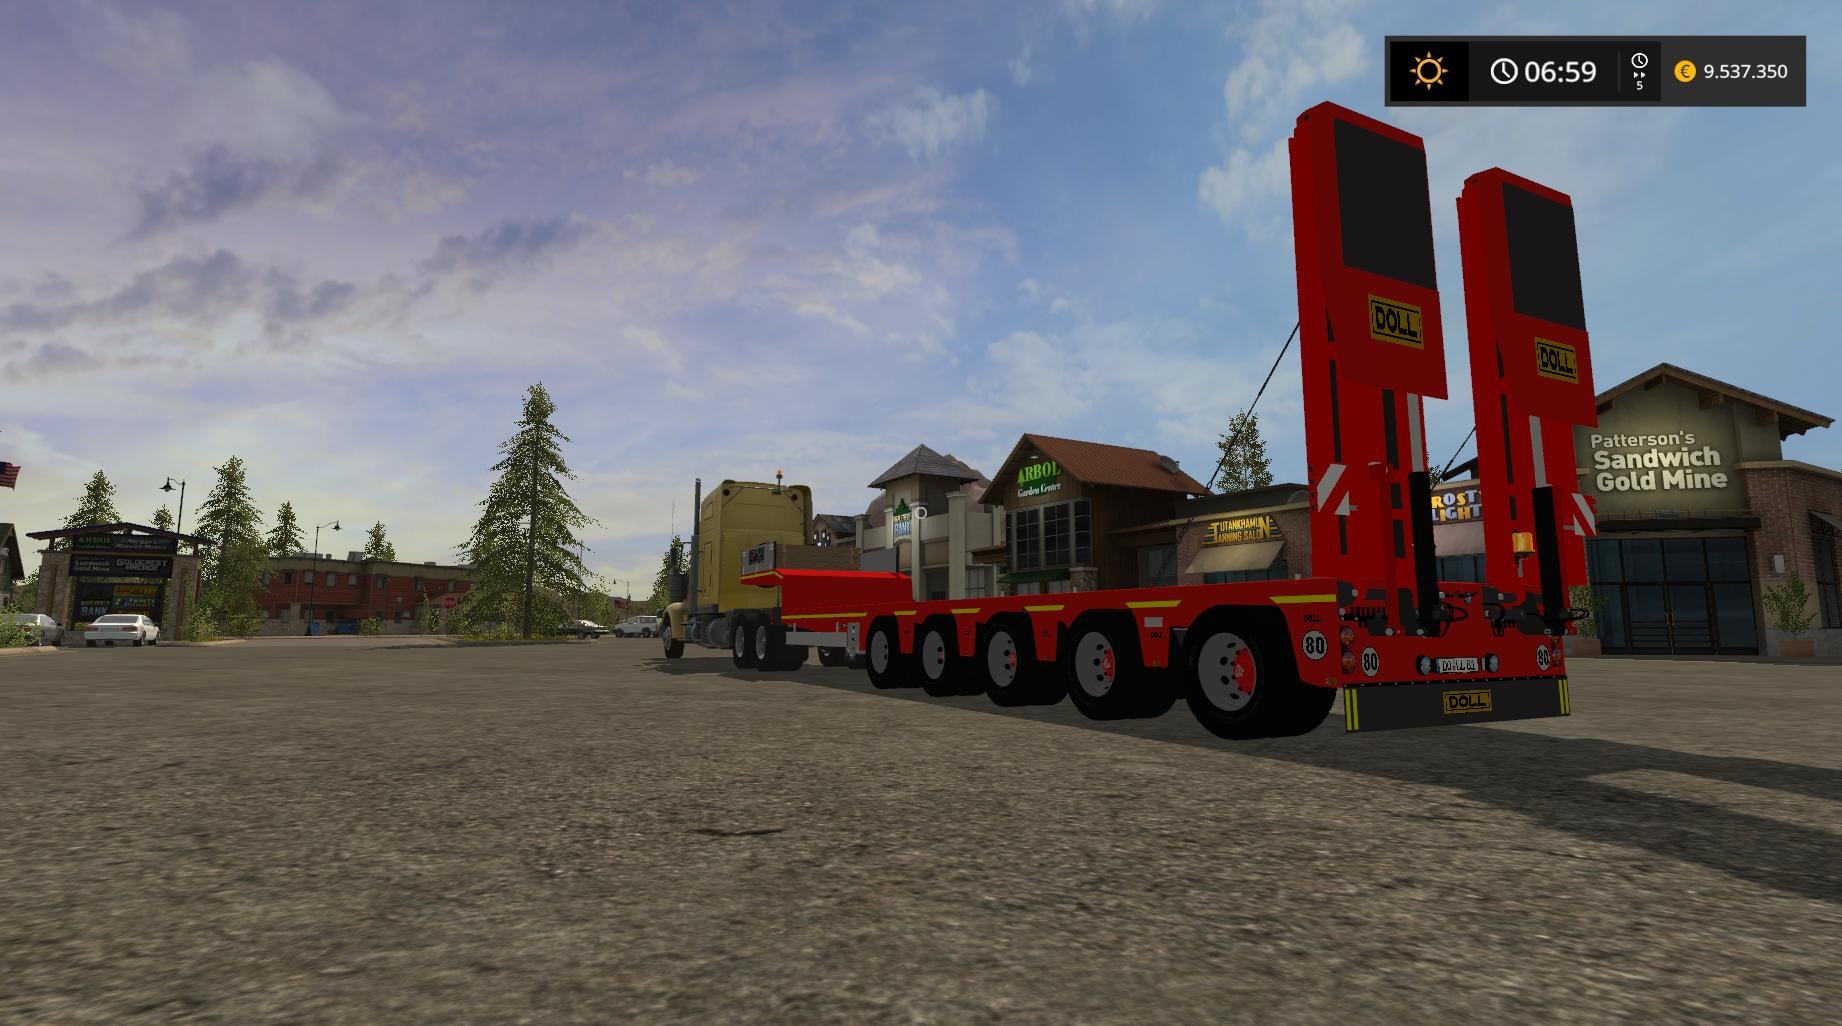 Who Says You Cant Take It With You together with 517351075918574468 besides Two Story Luxury Motorhomes moreover Horse Trailers Trucks Buses likewise Kw T800b T800h Pack V1 0 Fs17. on semi truck stacker trailers